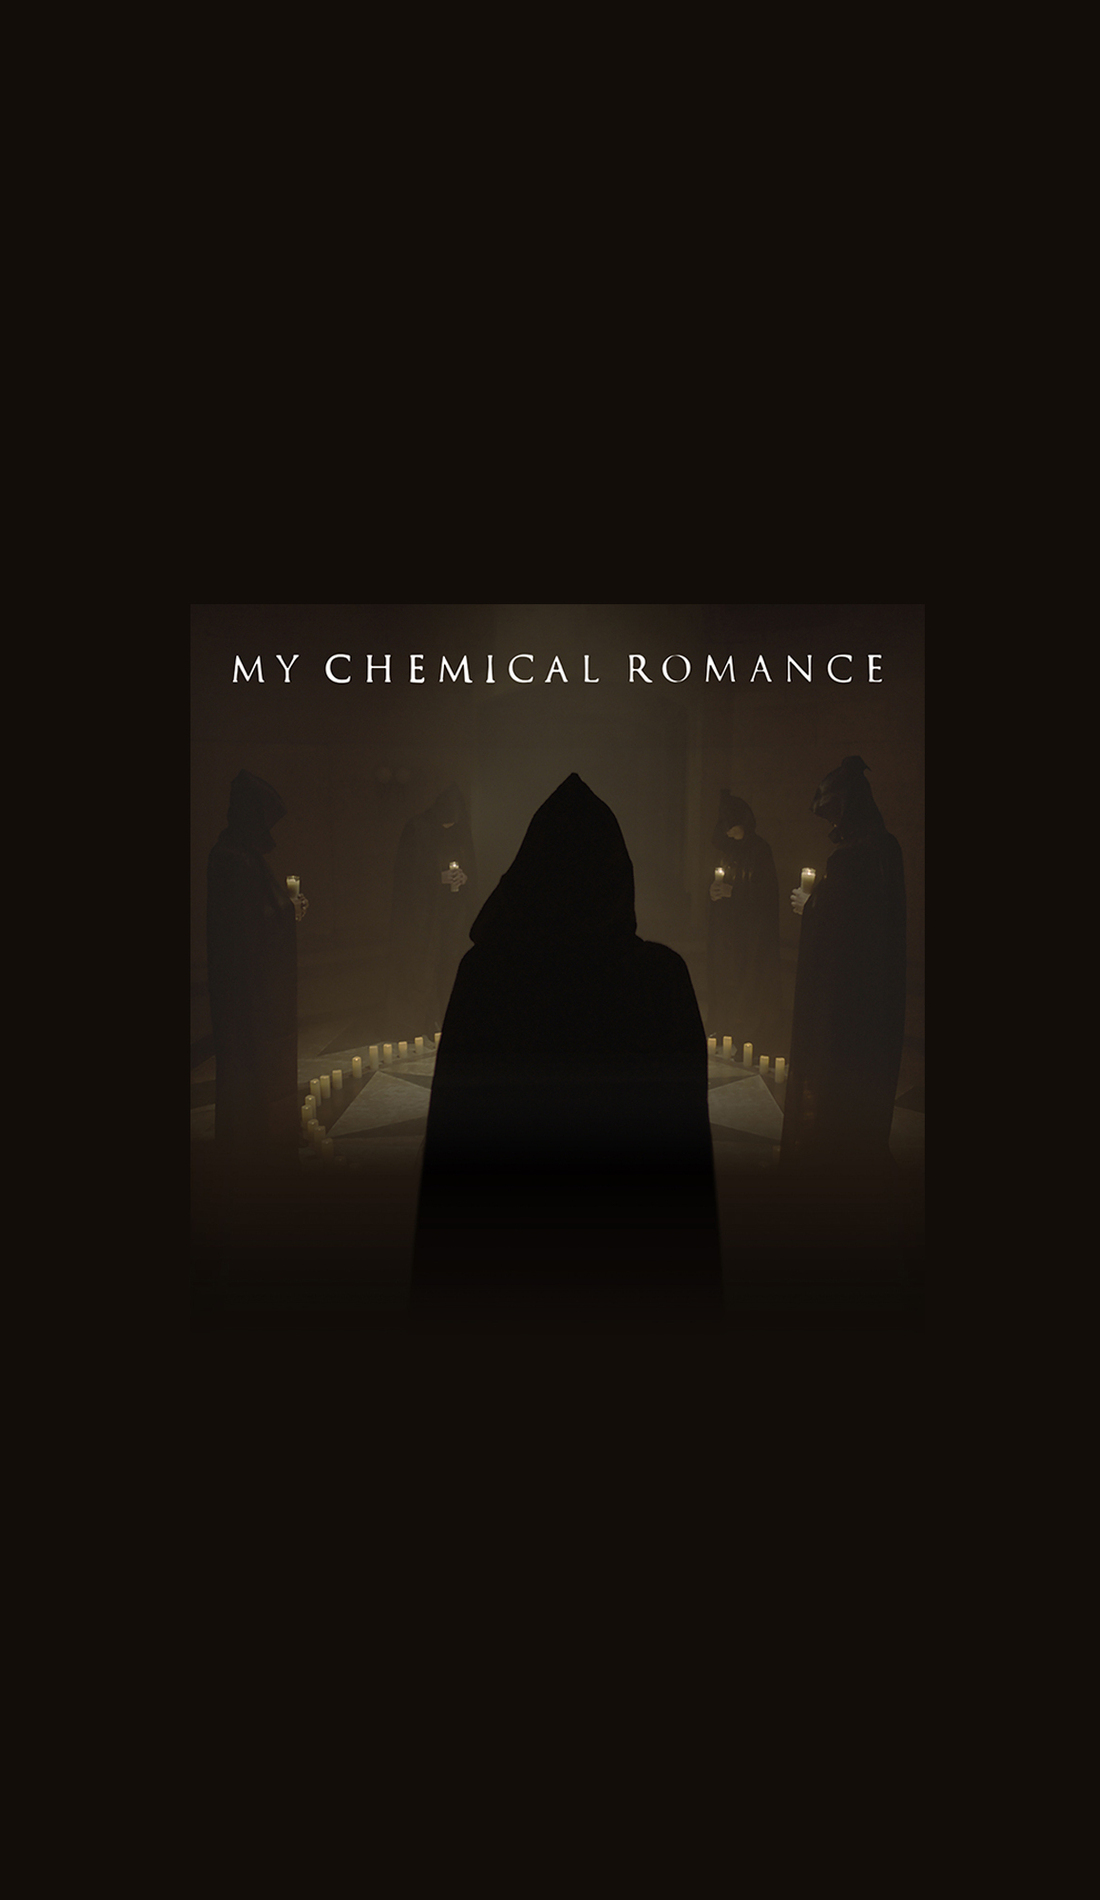 A My Chemical Romance live event